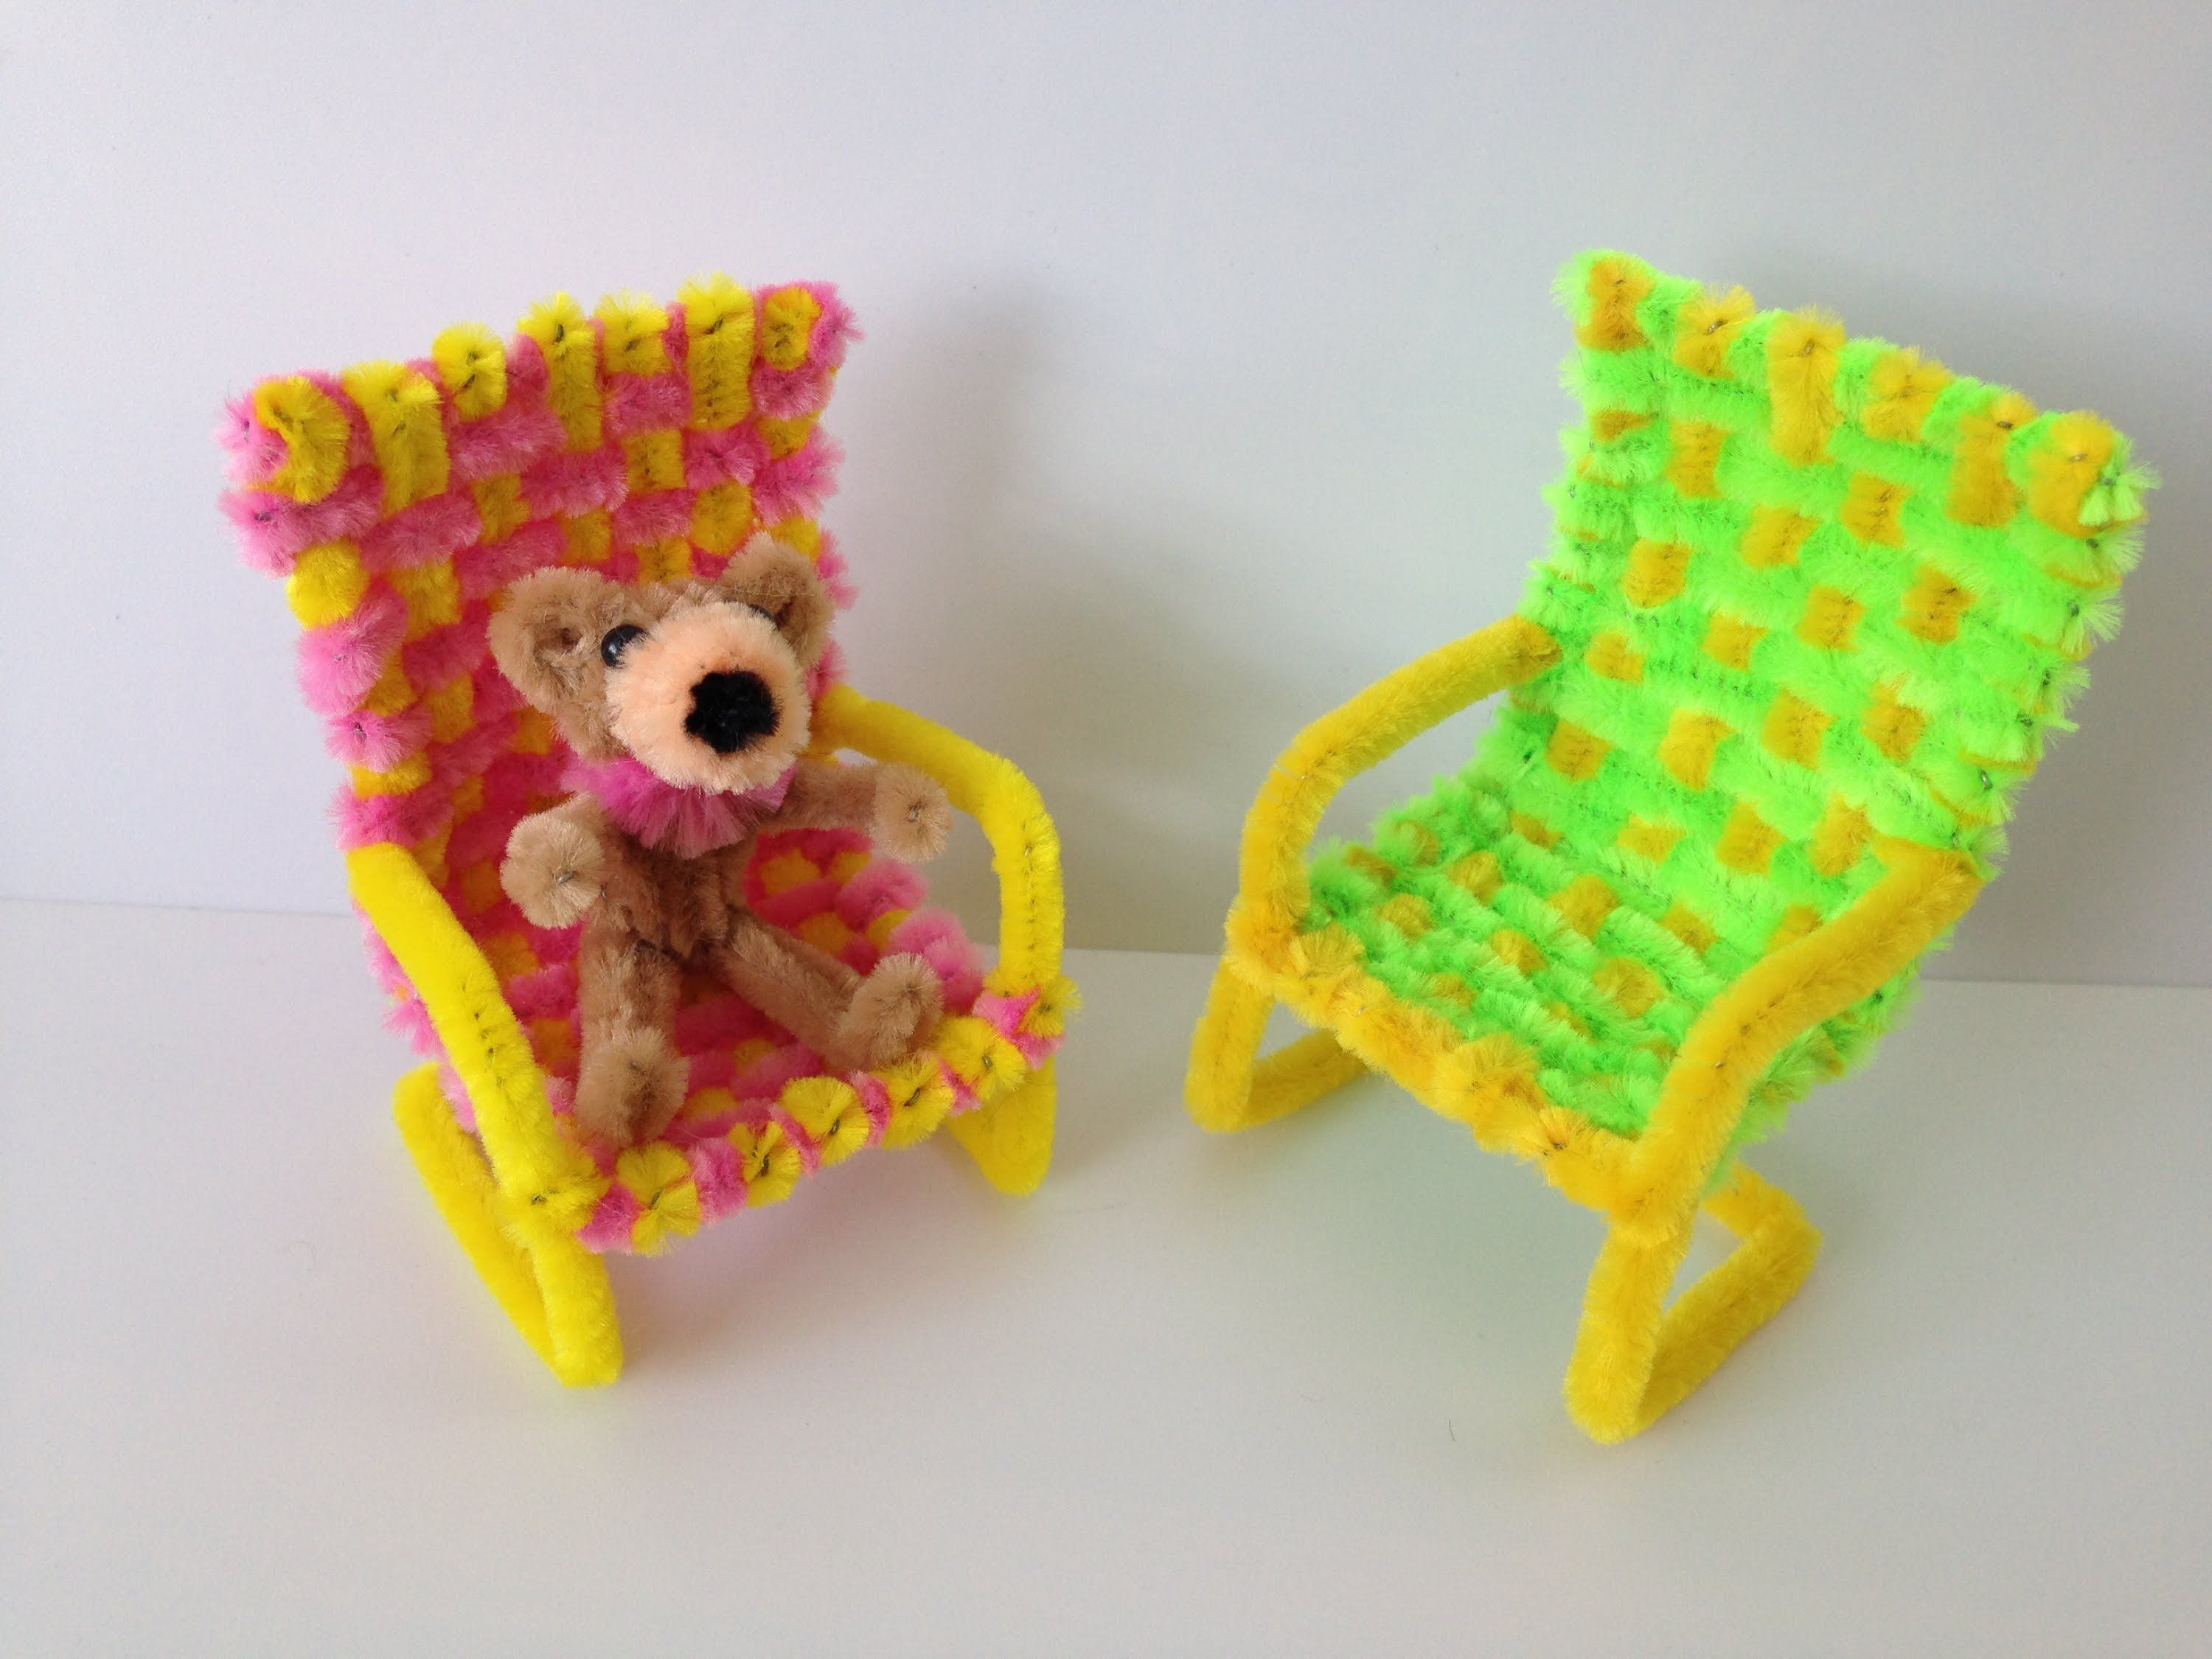 Pipe cleaners for crafts - How To Make A Pipe Cleaner Chair 36